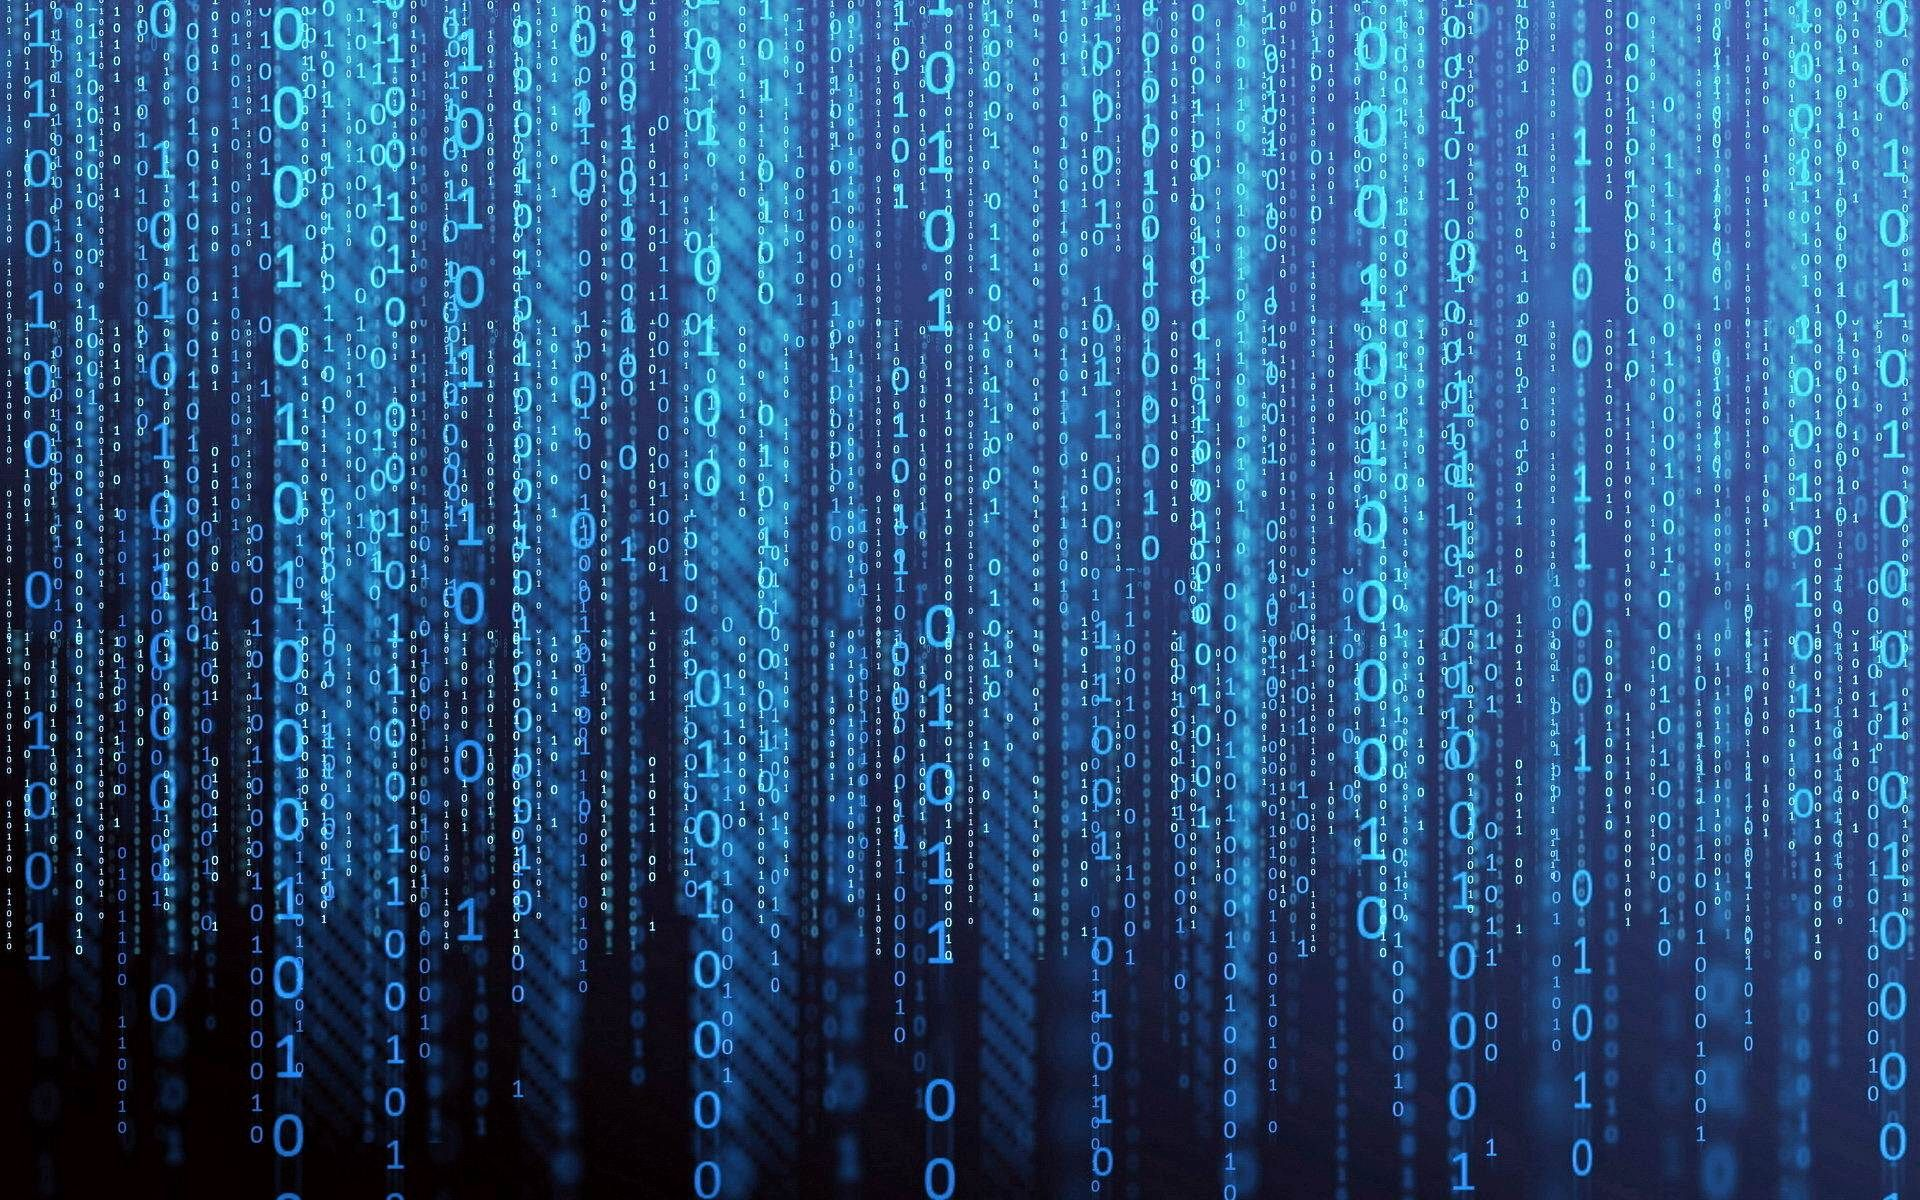 Matrix Wallpaper 37986 1920x1200 Px Hdwallsource Com Code Wallpaper Cool Blue Wallpaper Blue Background Wallpapers